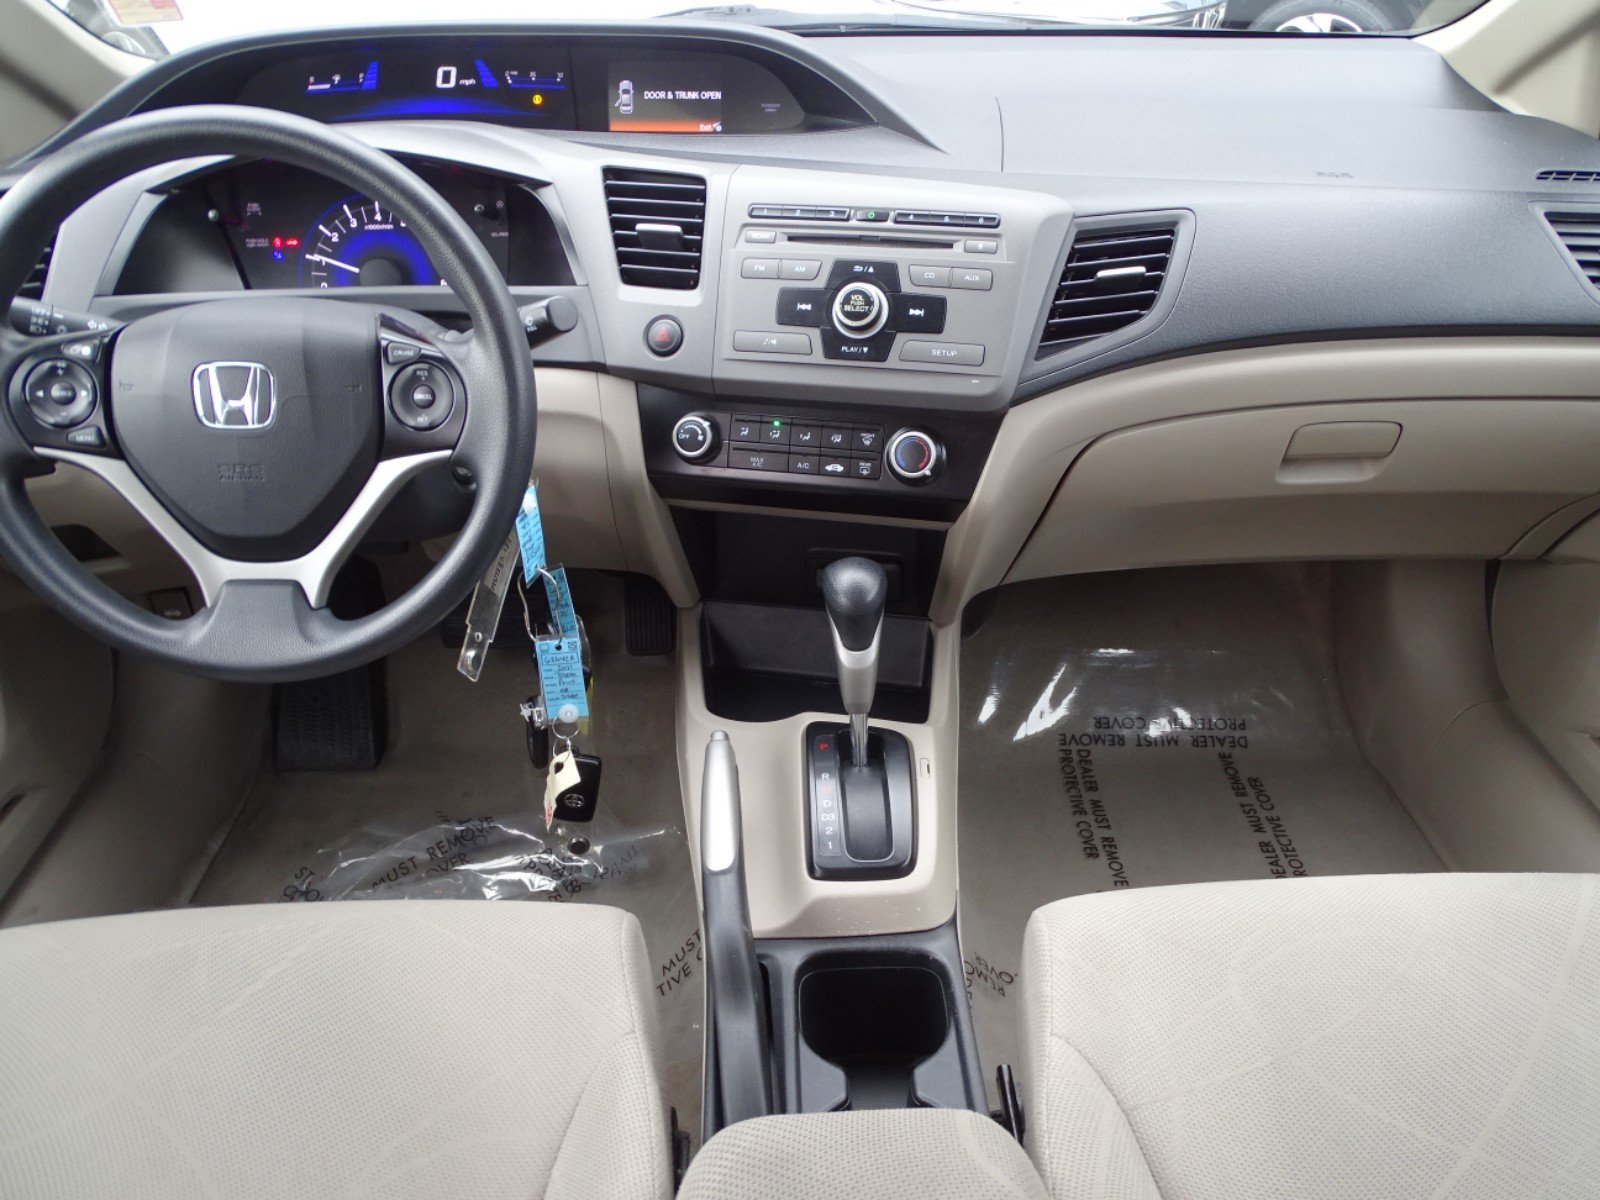 Pre-Owned 2012 Honda Civic LX Sedan